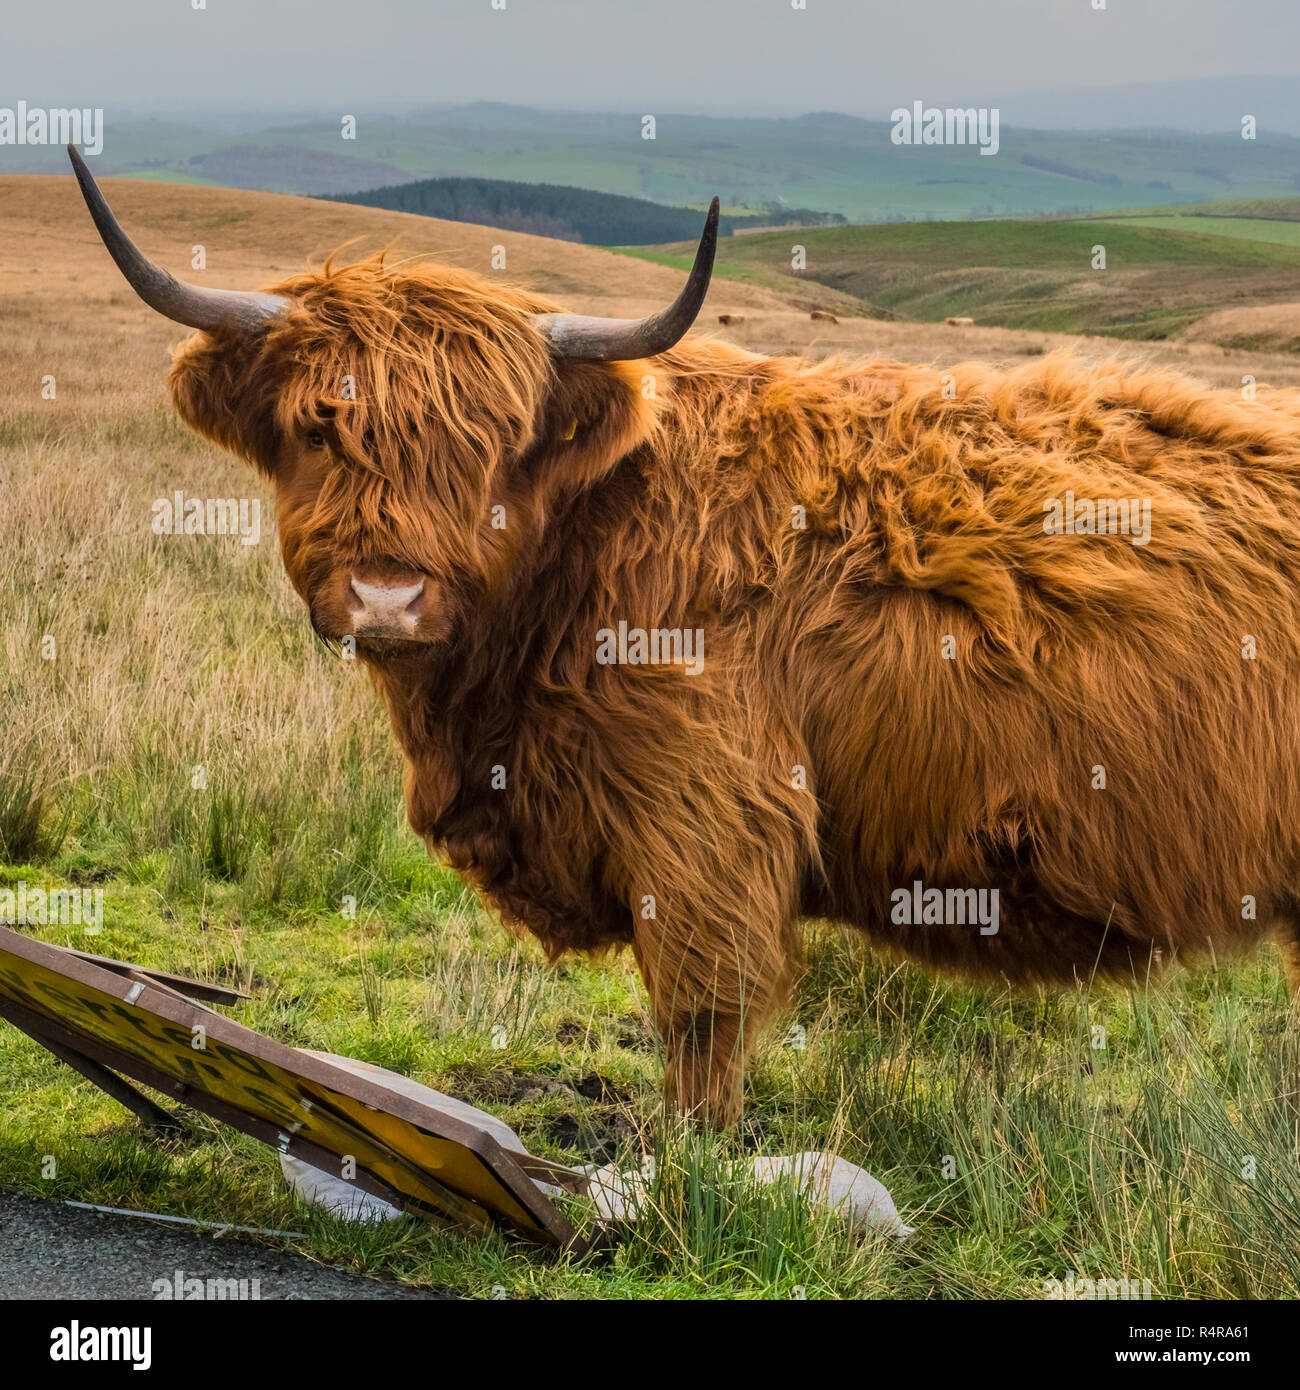 Highland Cattle in the Yorkshire Dales near to Settle. - Stock Image